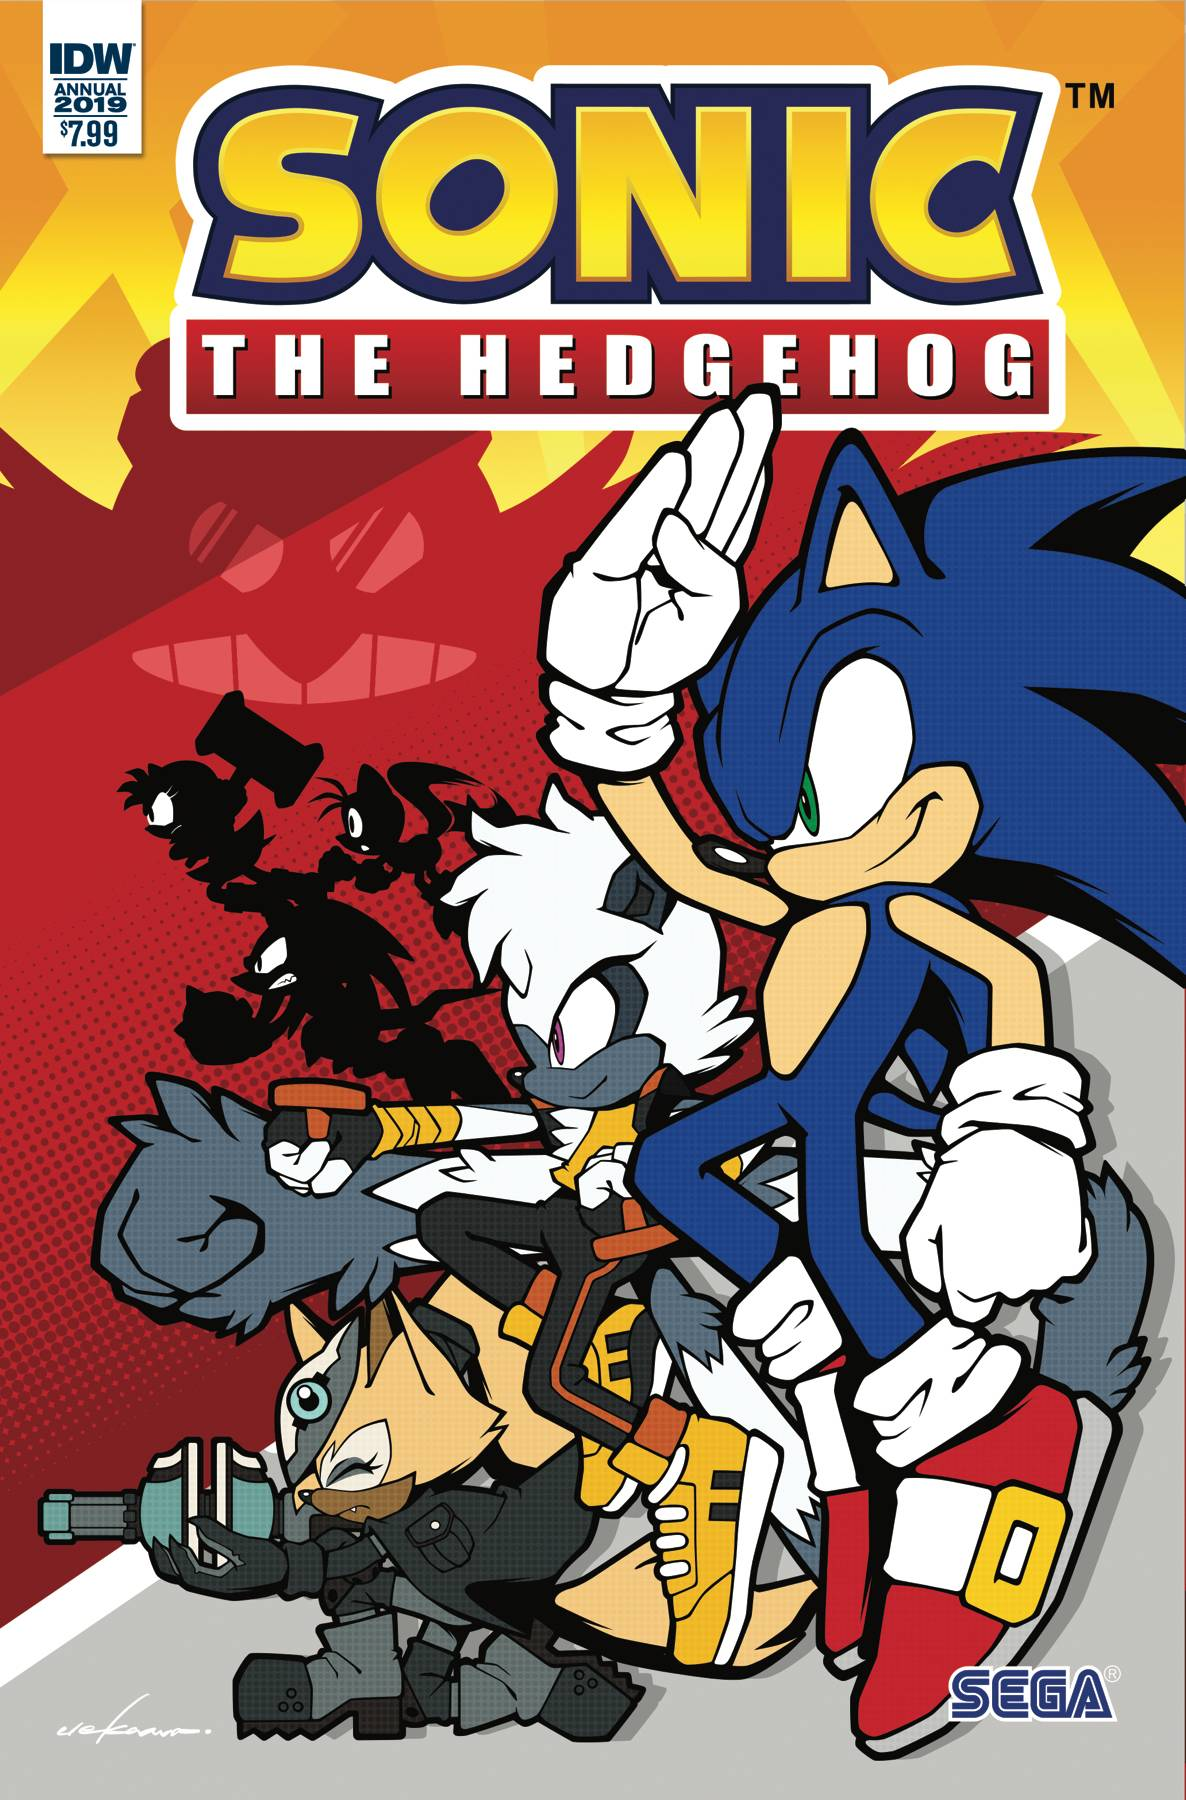 SONIC THE HEDGEHOG ANNUAL 2019 CVR A SONIC TEAM.jpg